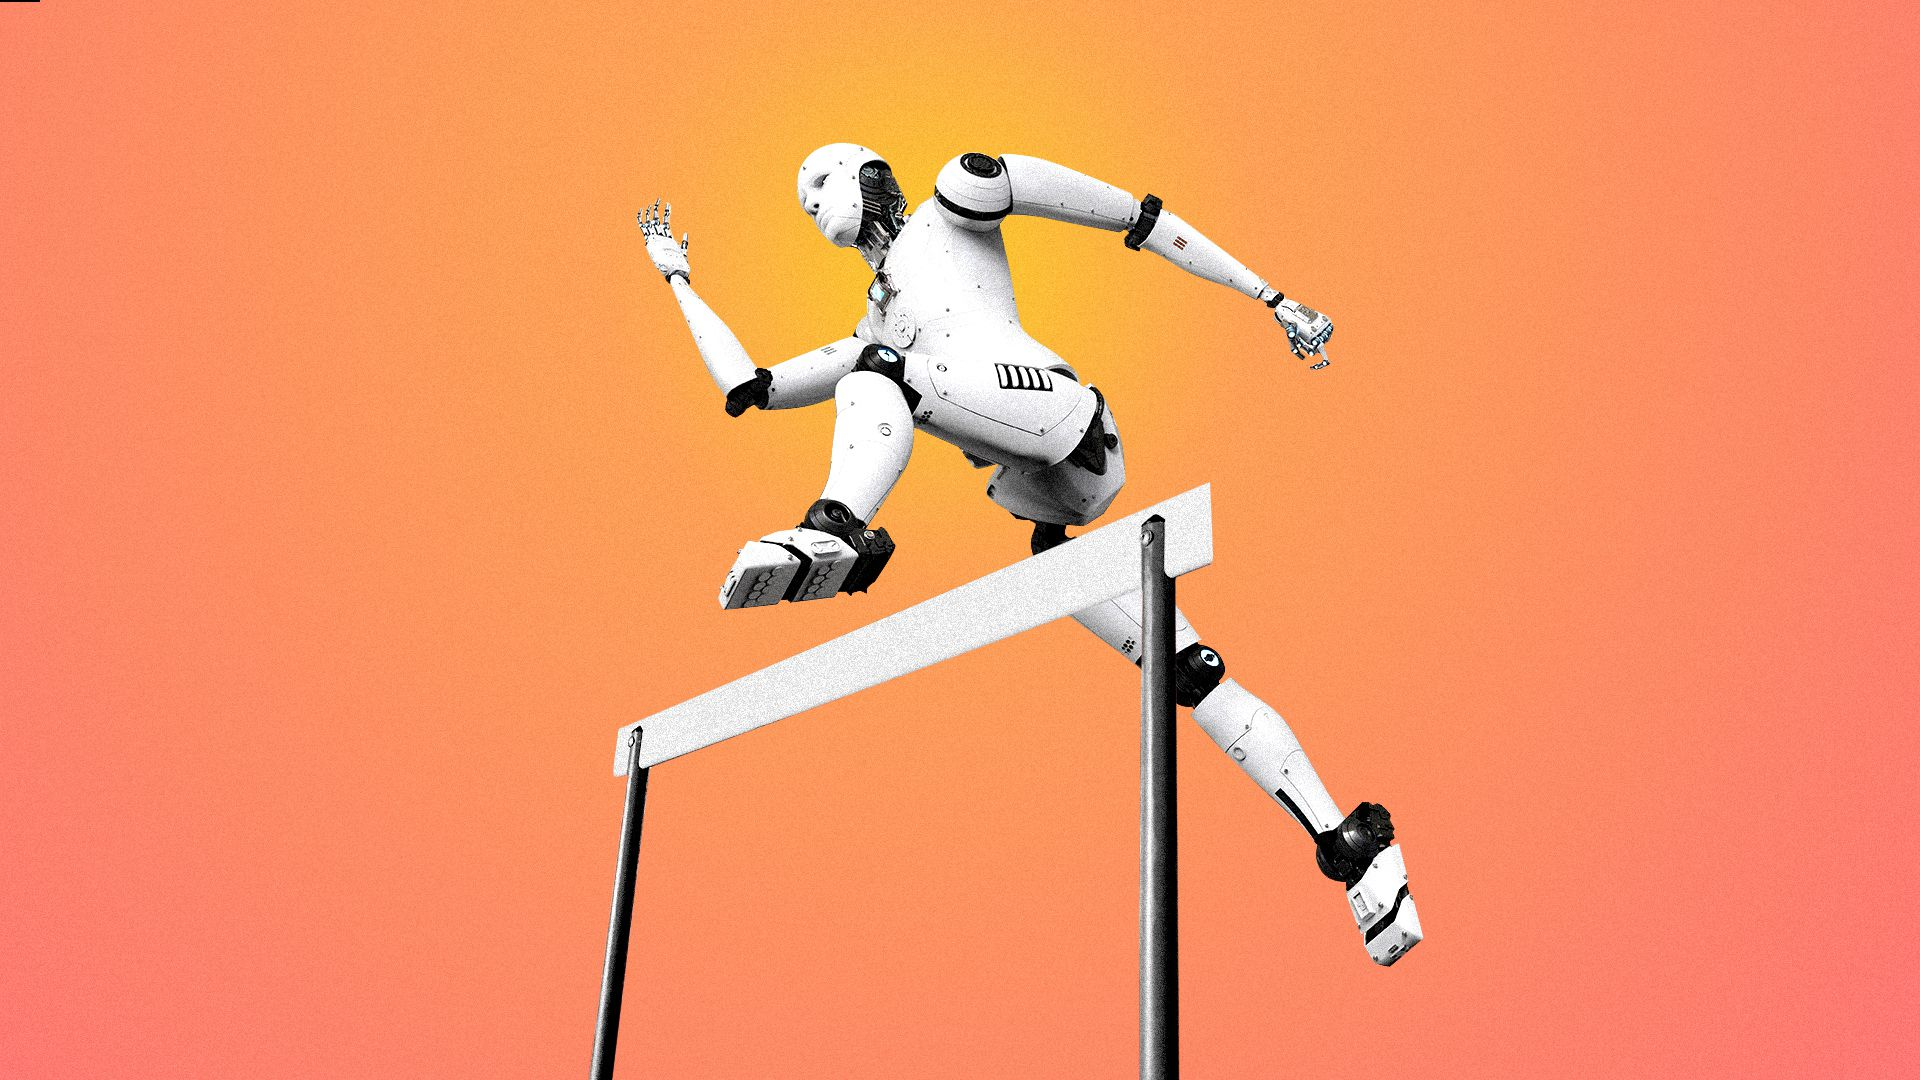 An obstacle course for AI